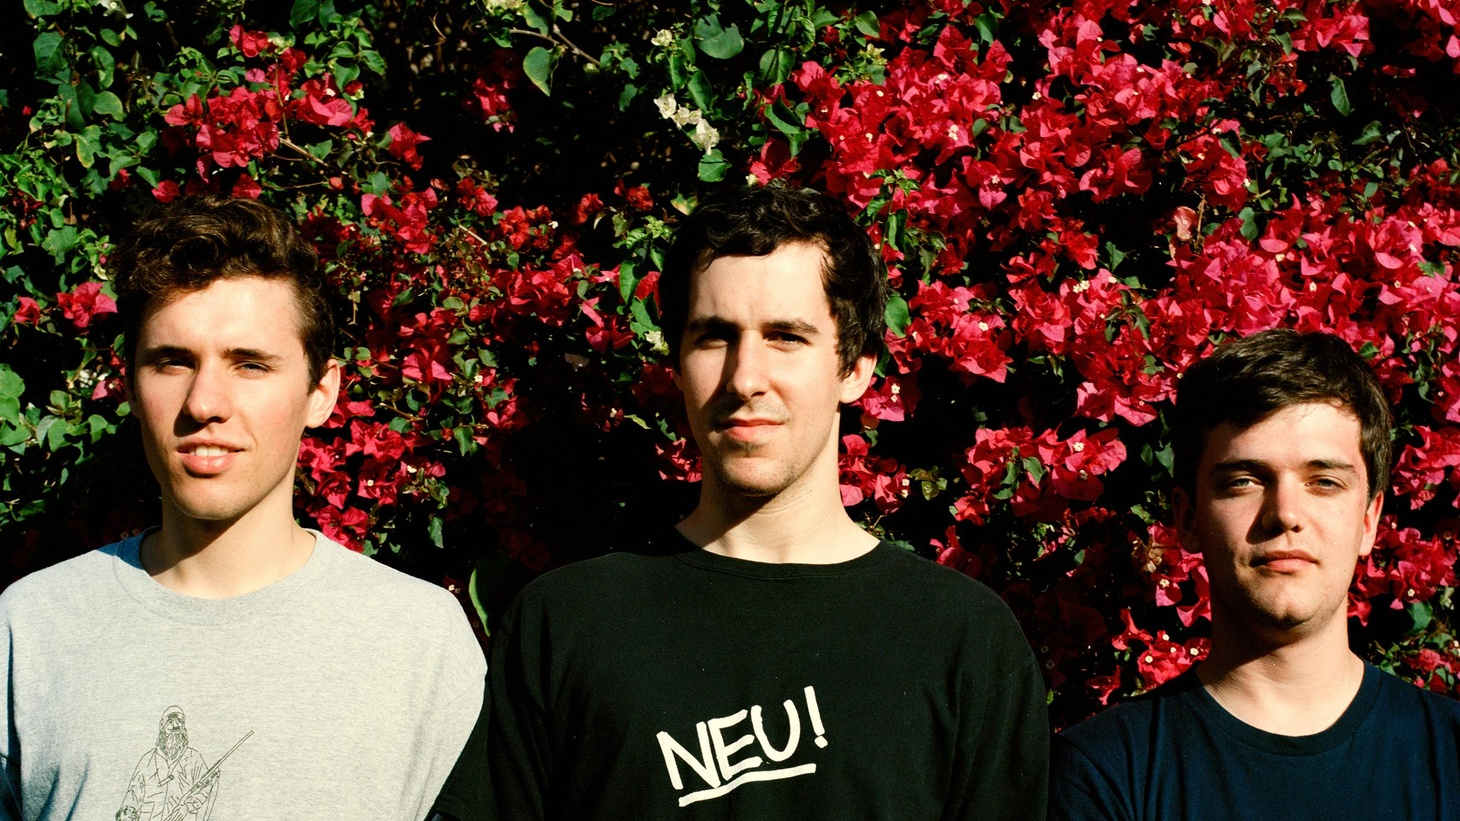 Toronto trio BADBADNOTGOOD are young musicians who modernize jazz with a focus on fluid, improvised instrumental music.